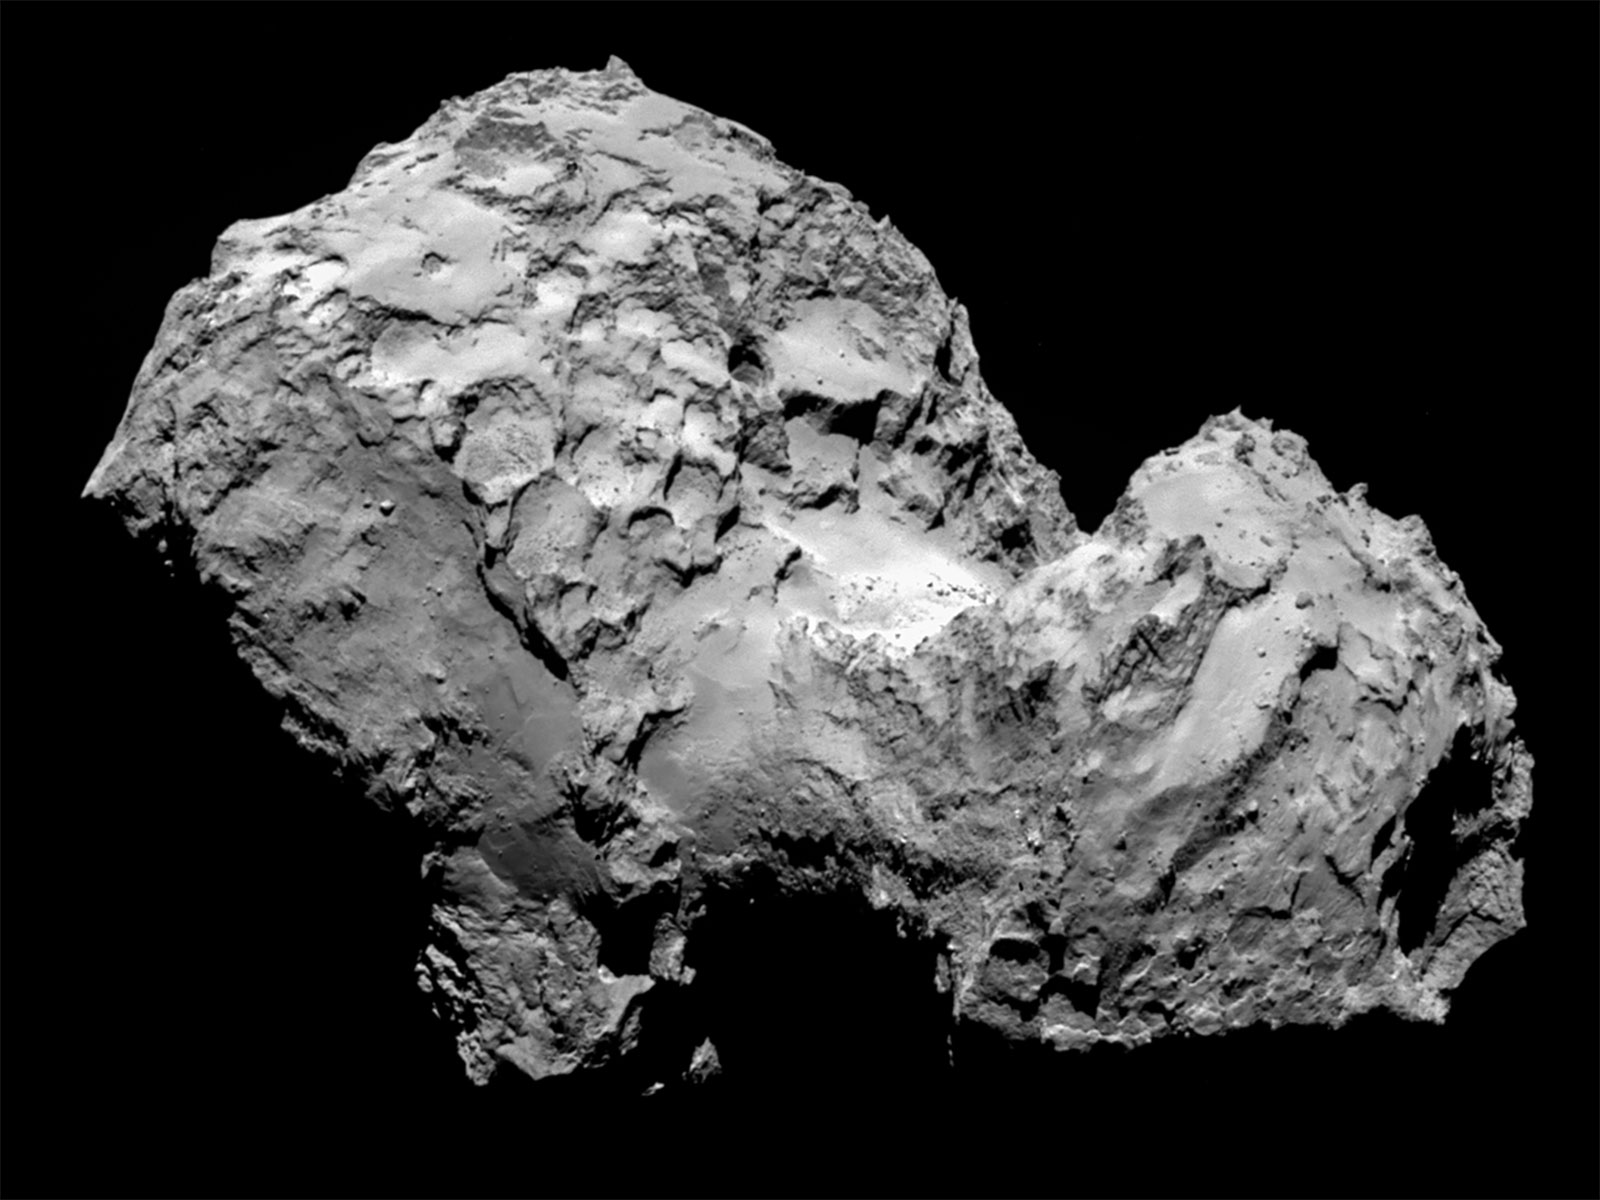 Credit: ESA/Rosetta/MPS for OSIRIS Team